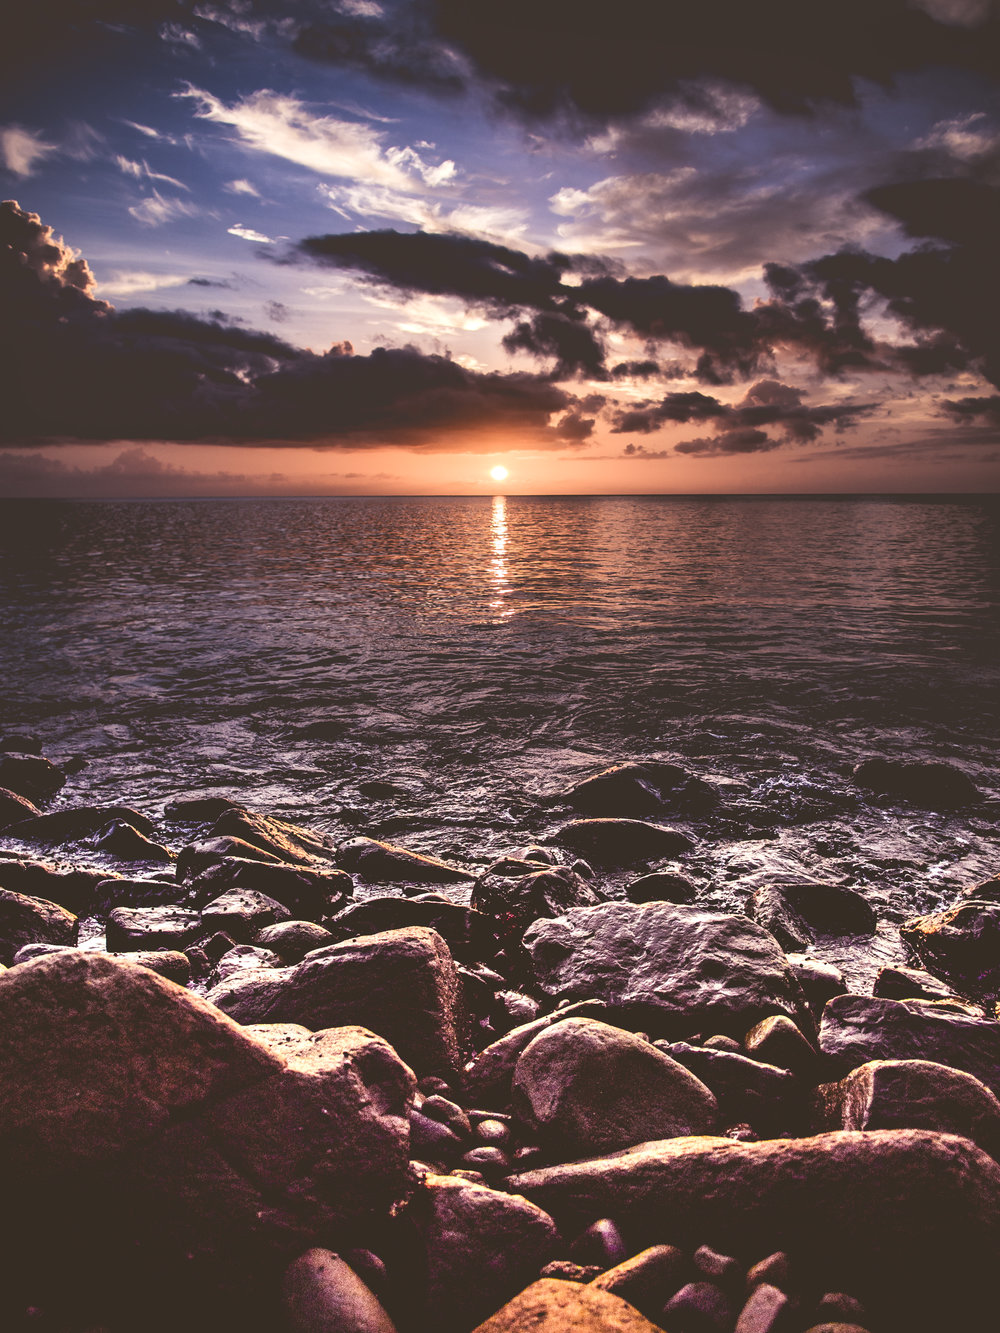 Olympus PEN 12mm f/2.0 Lens Wide Angle Sunset St Lucia C'est La Vie Beach Rocks Sea